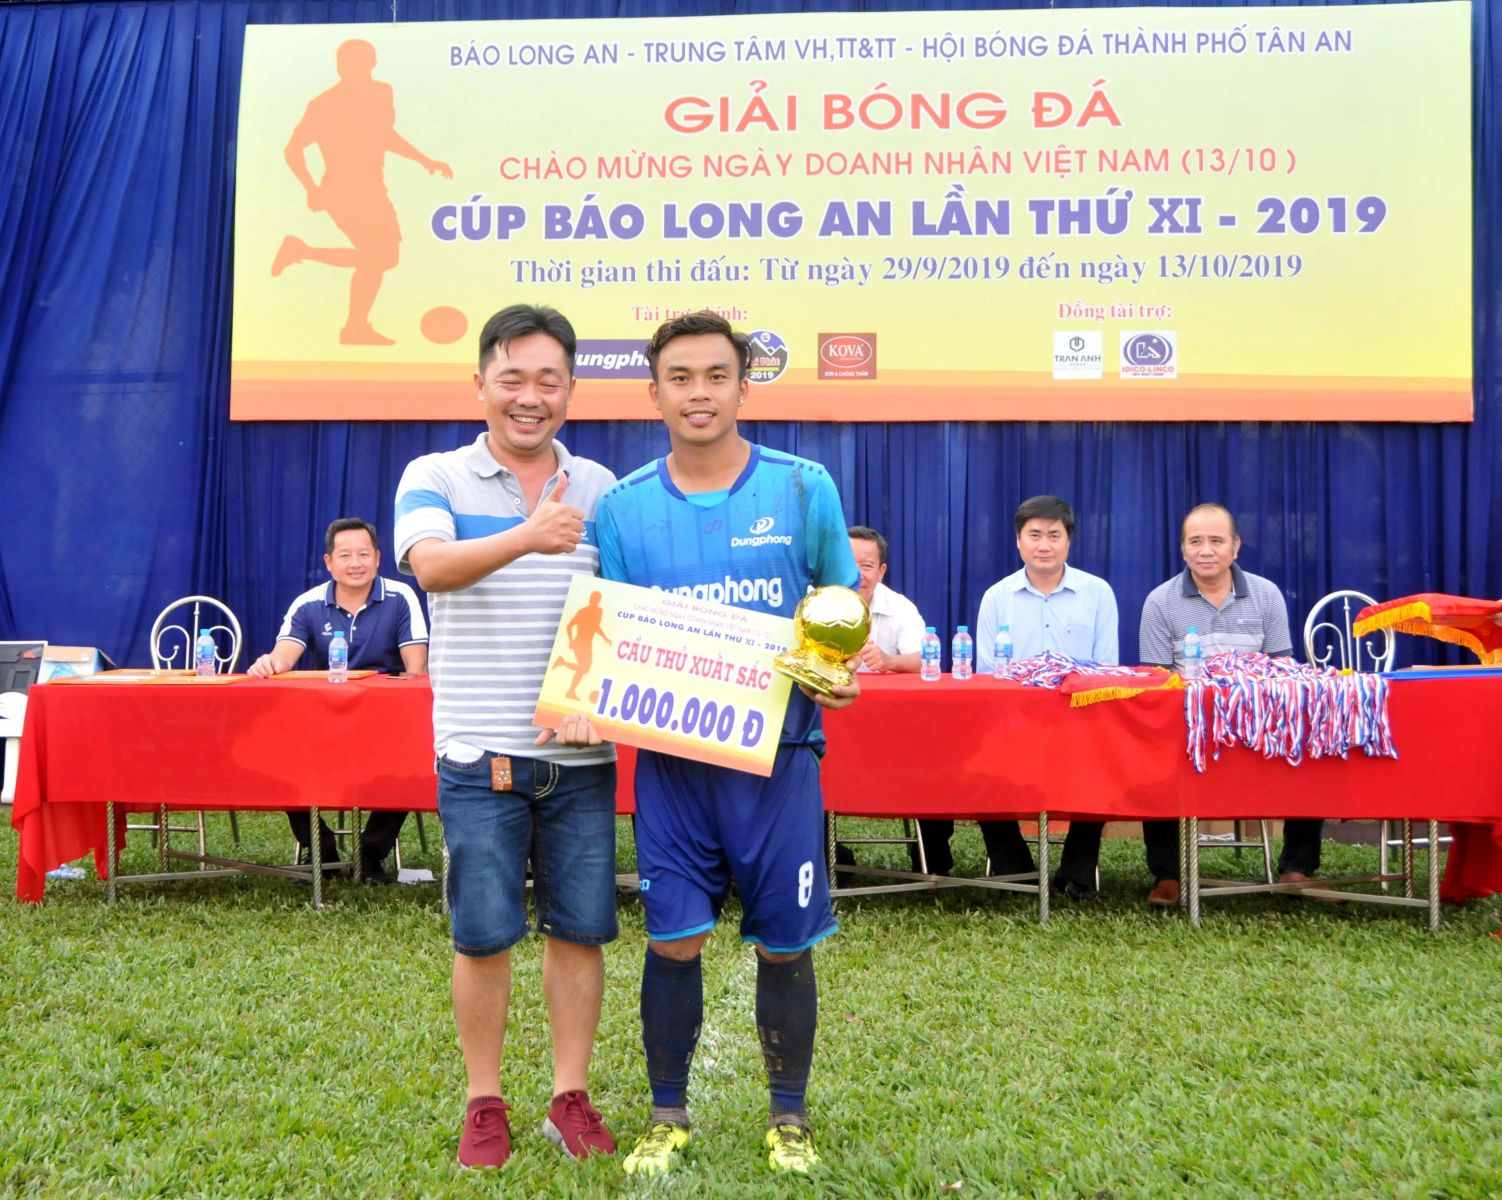 Dung Phong's Nguyen Viet Thang is voted the best player in the tournament